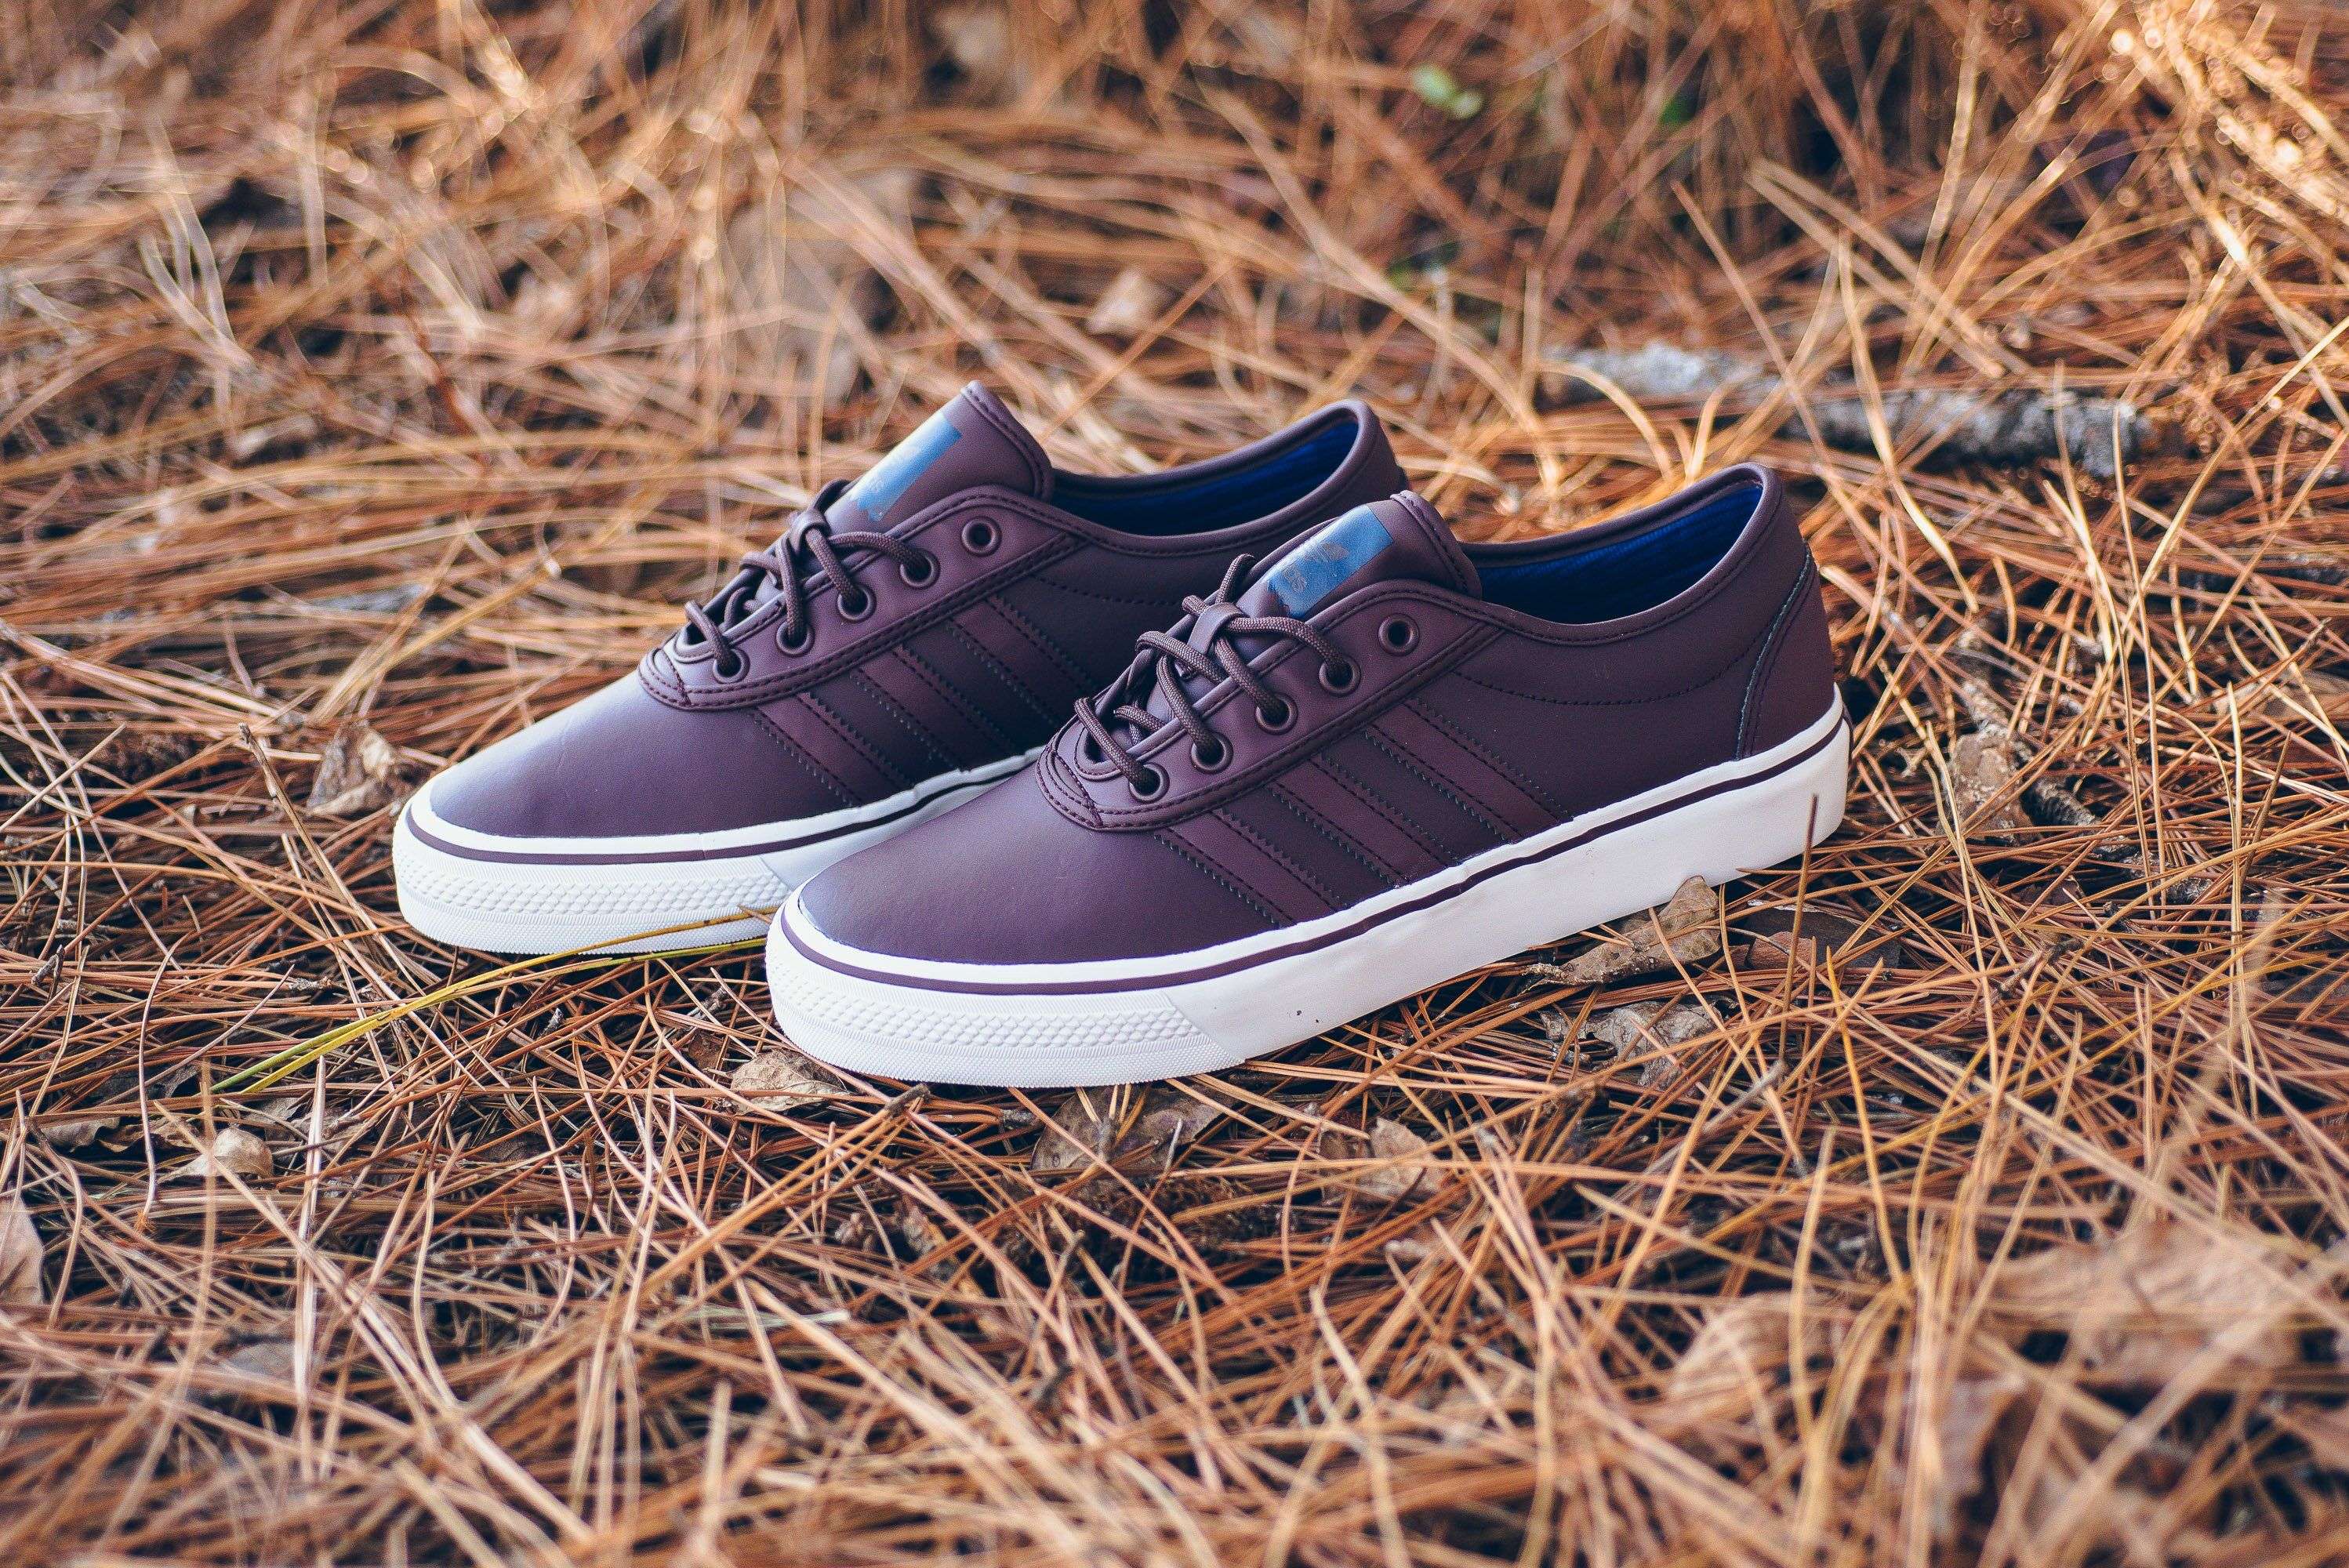 Adidas Adi Ease Dark Burgundy / blanco / Navy púrpura Pinterest